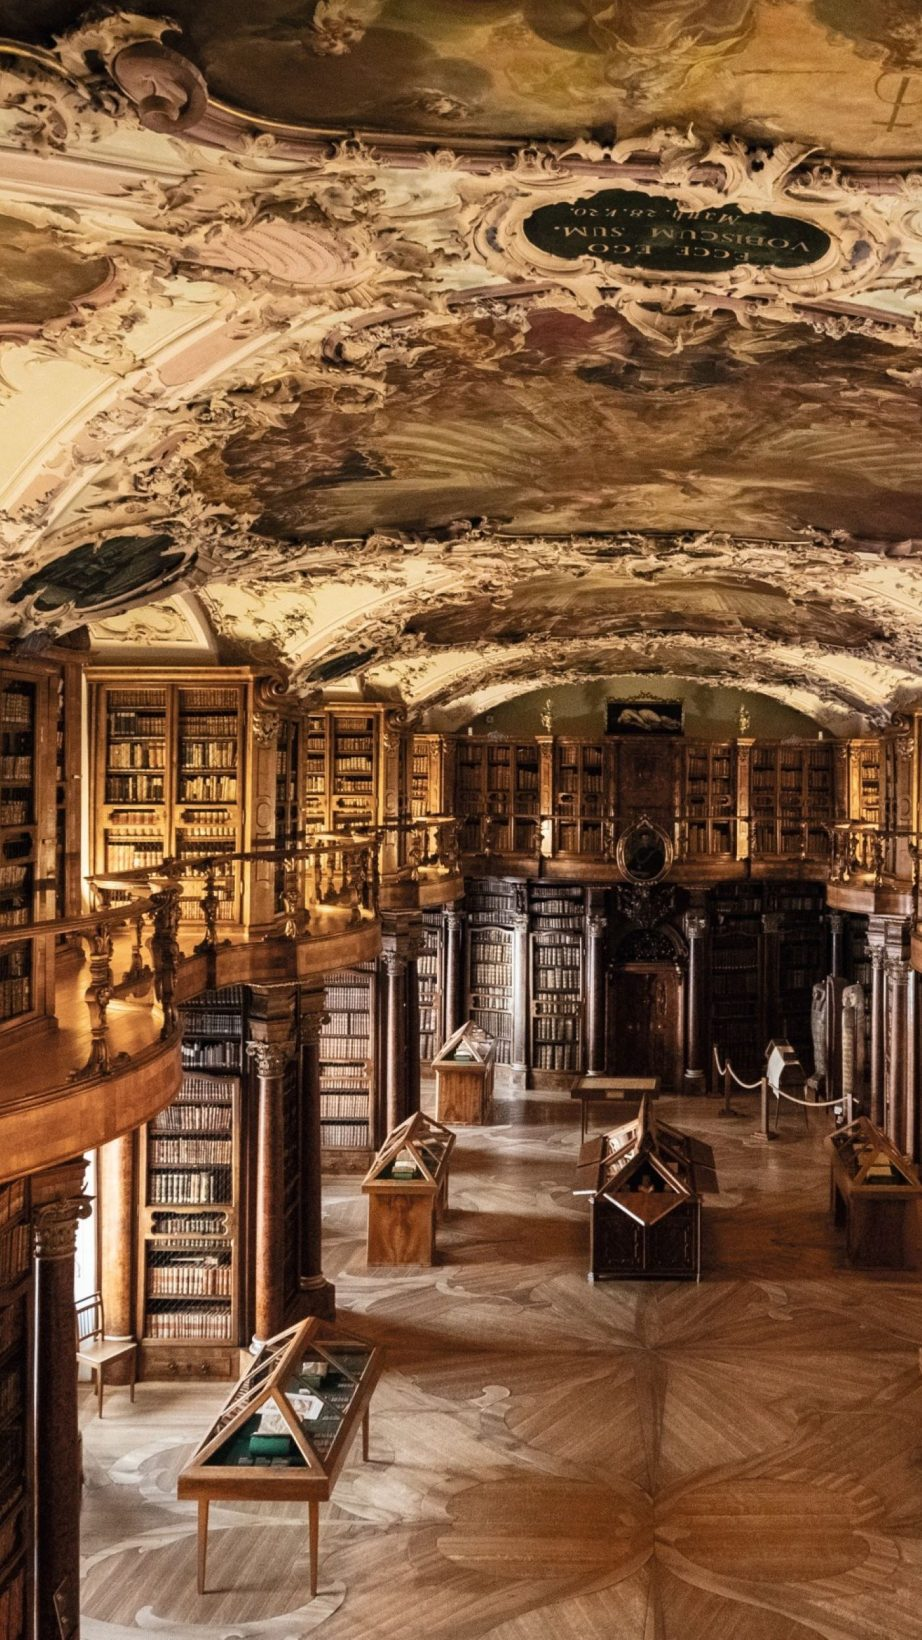 A Swiss library on UNESCO's World Heritage List